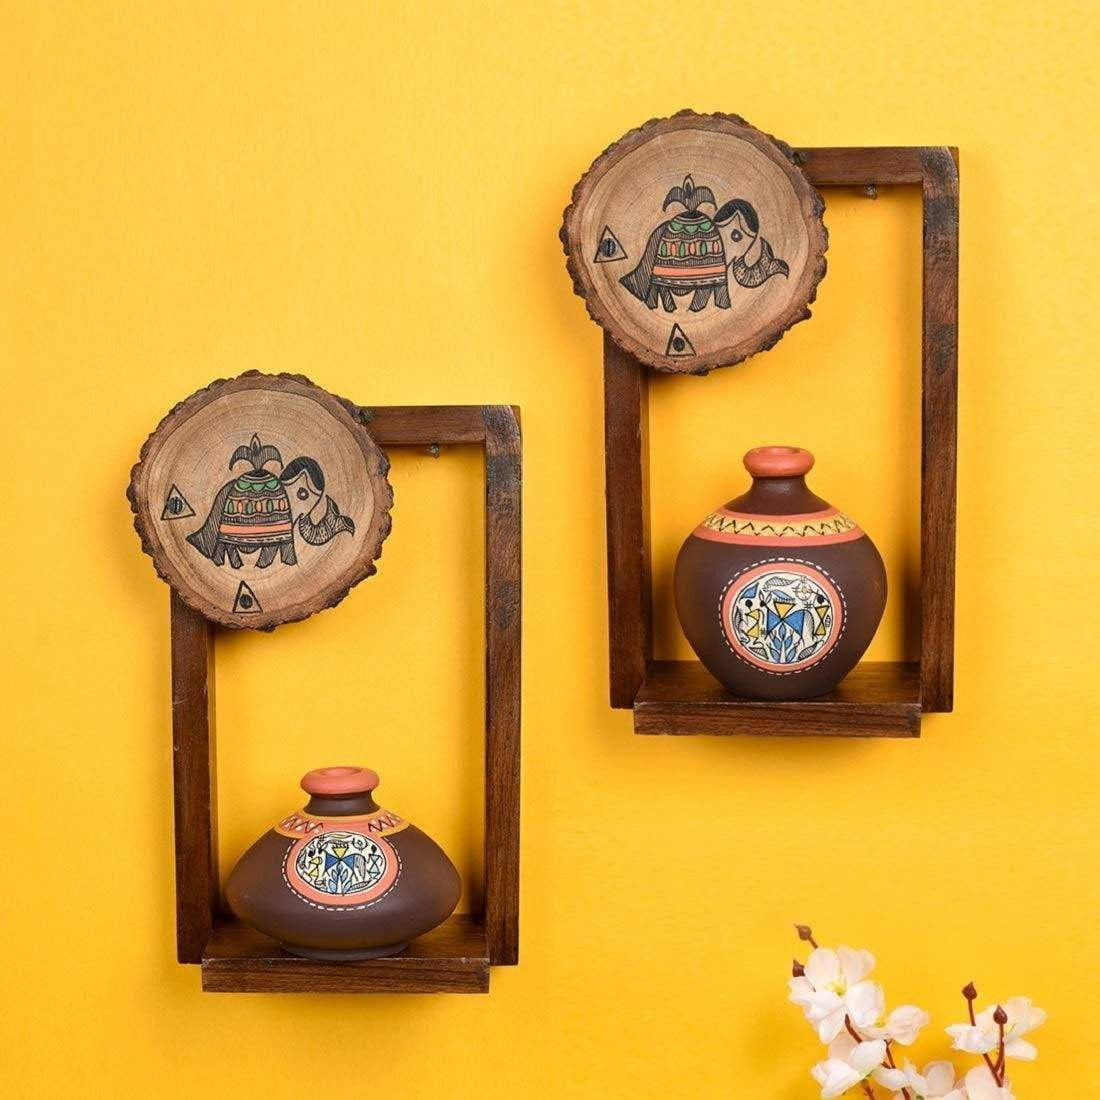 Decorative Wall Shelves With Brown Terracotta Vases.